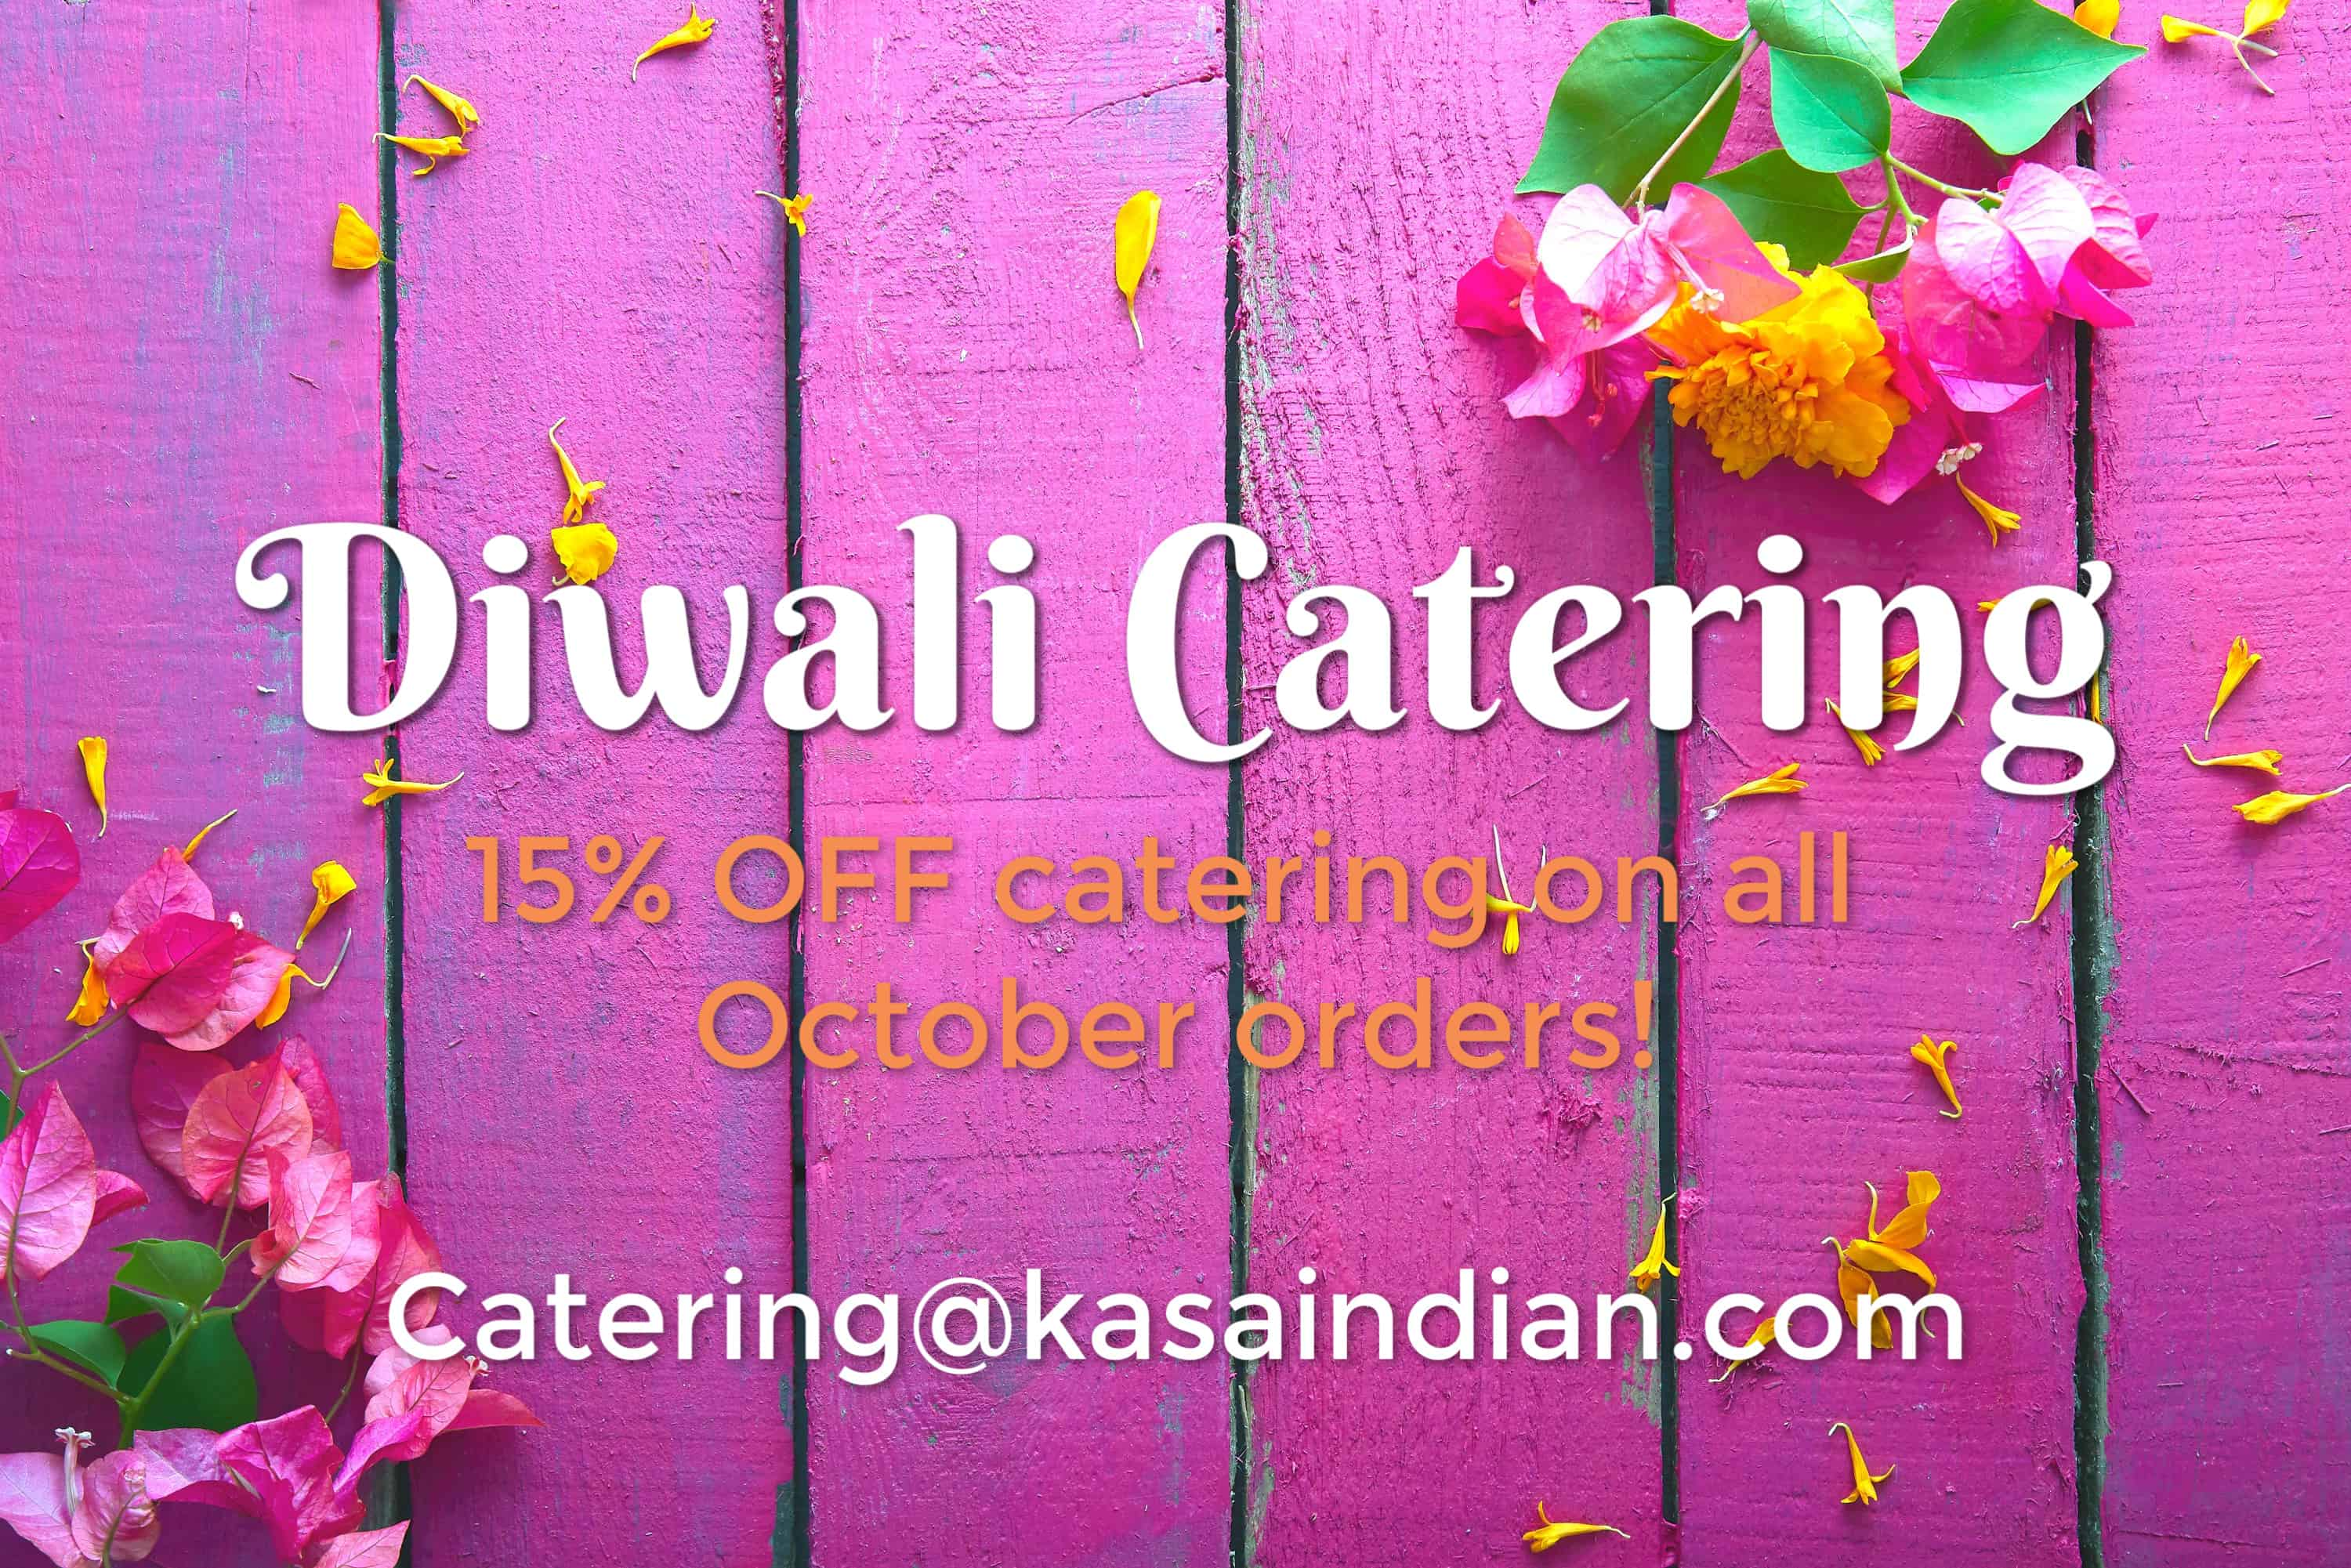 Kasa Indian Eatery - Diwali